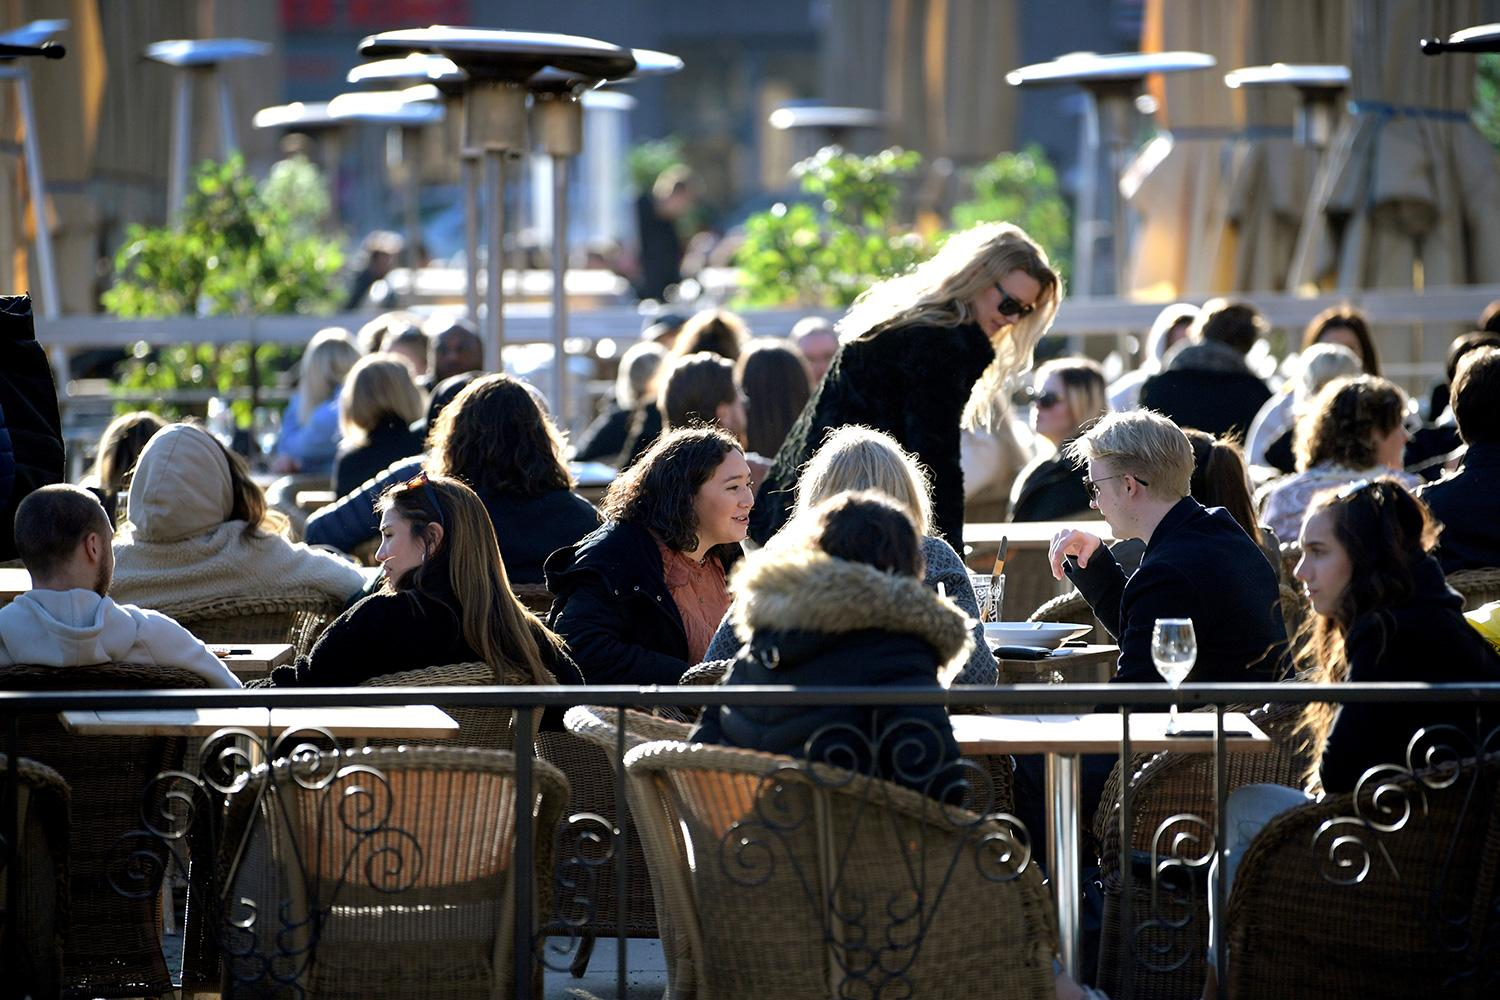 People enjoy the sun at an outdoor restaurant, despite the continuing spread of the coronavirus disease (COVID-19), in Stockholm, Sweden March 26, 2020. The photo shows a large number of people sitting lose together in an outdoor eating area. TT News Agency/Janerik Henriksson via REUTERS